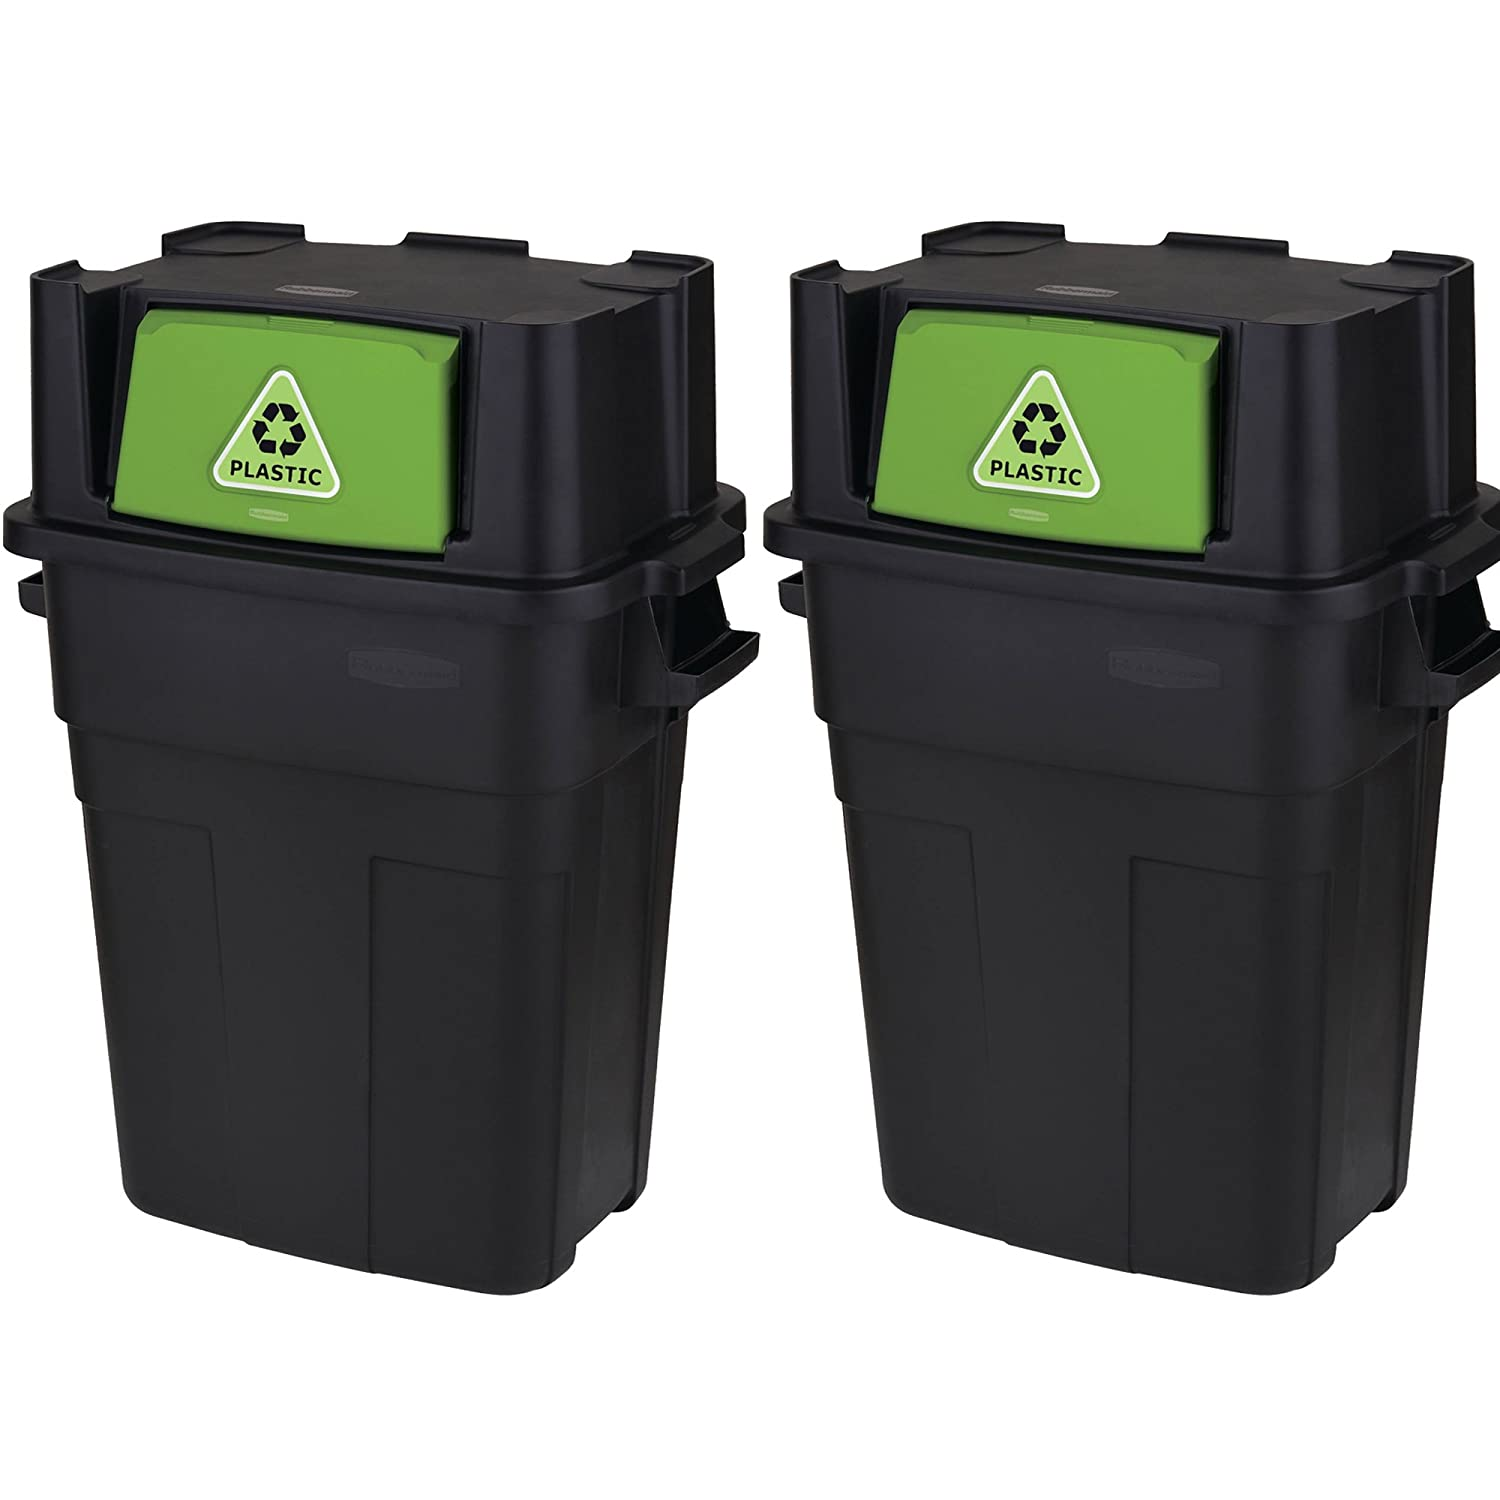 .MegaDeal. Stackable garbage trash recycle bin with flap door, 2-Pack